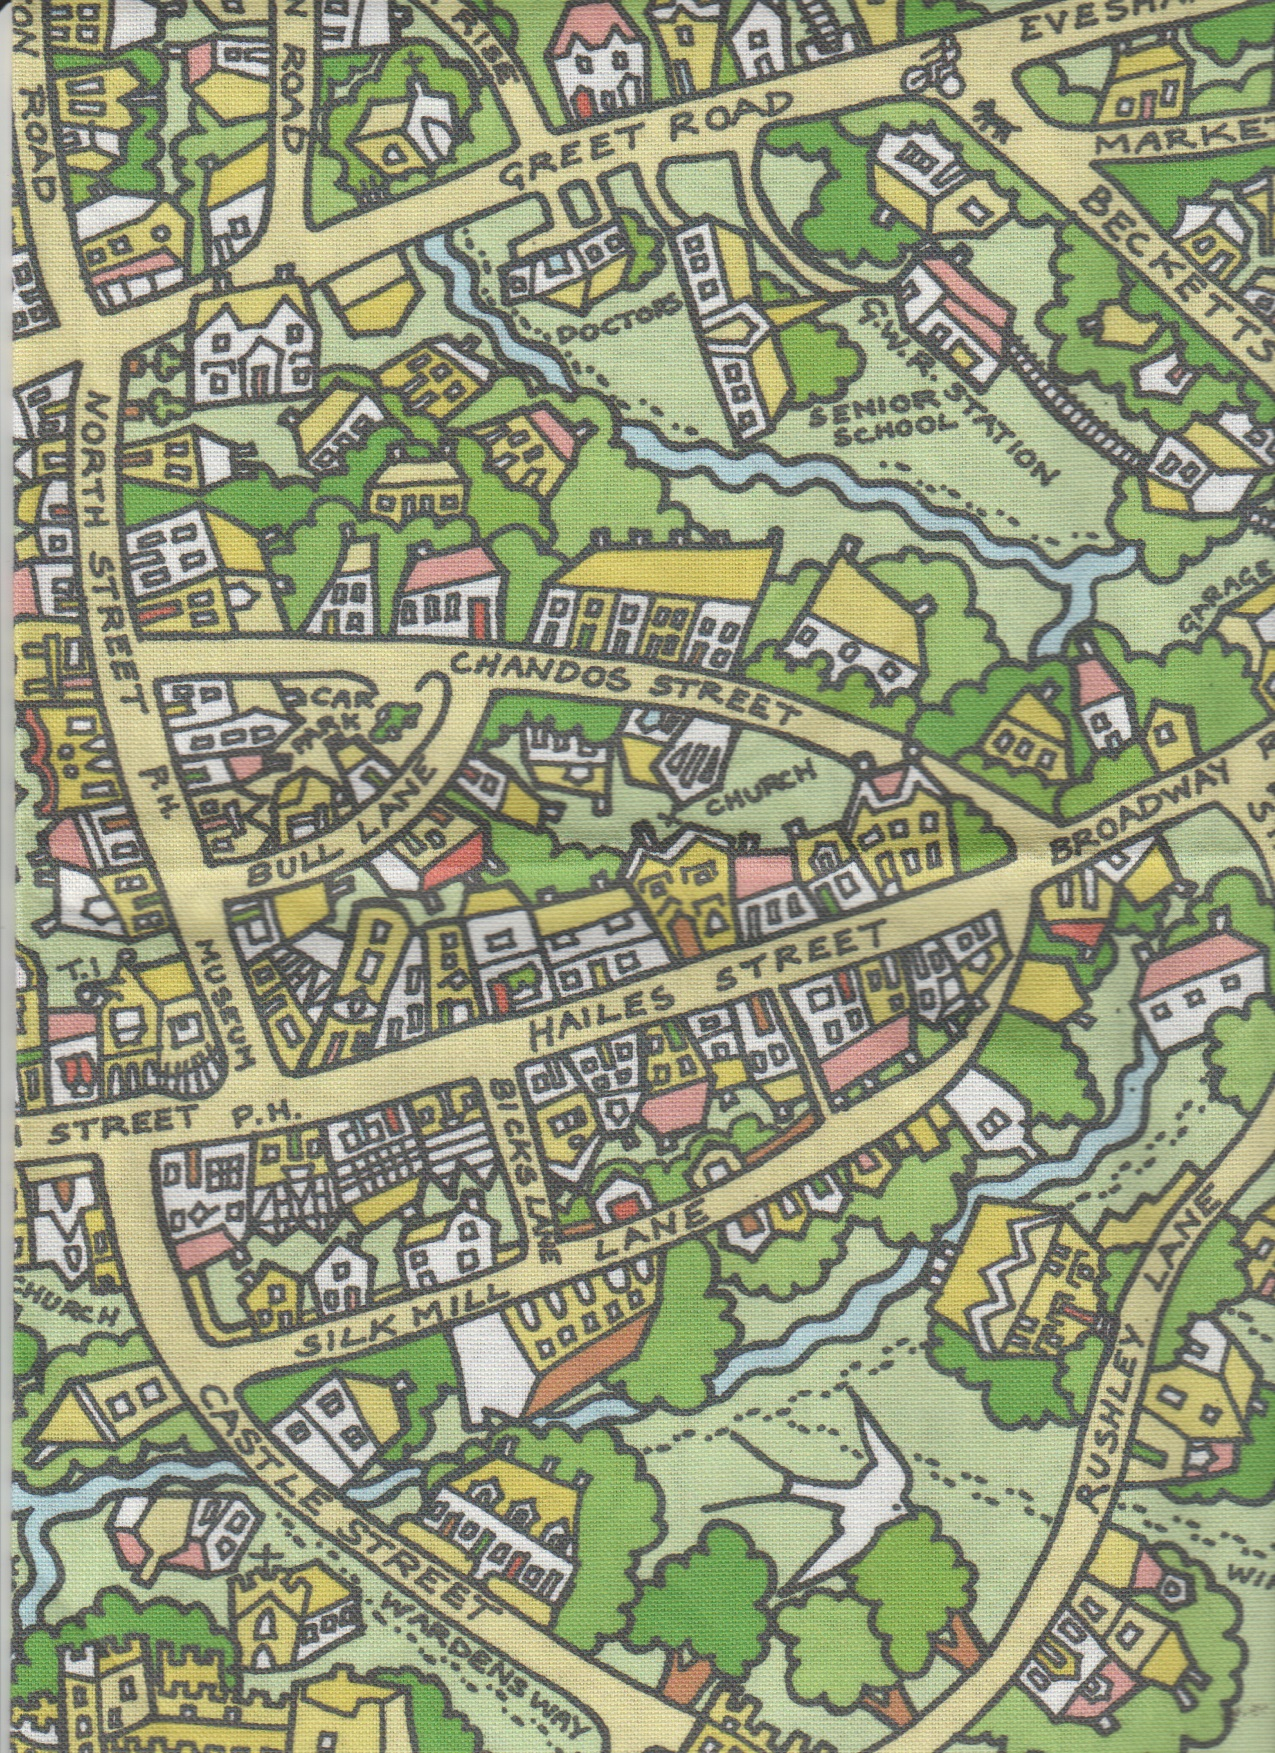 Cartoon map of winchcombe